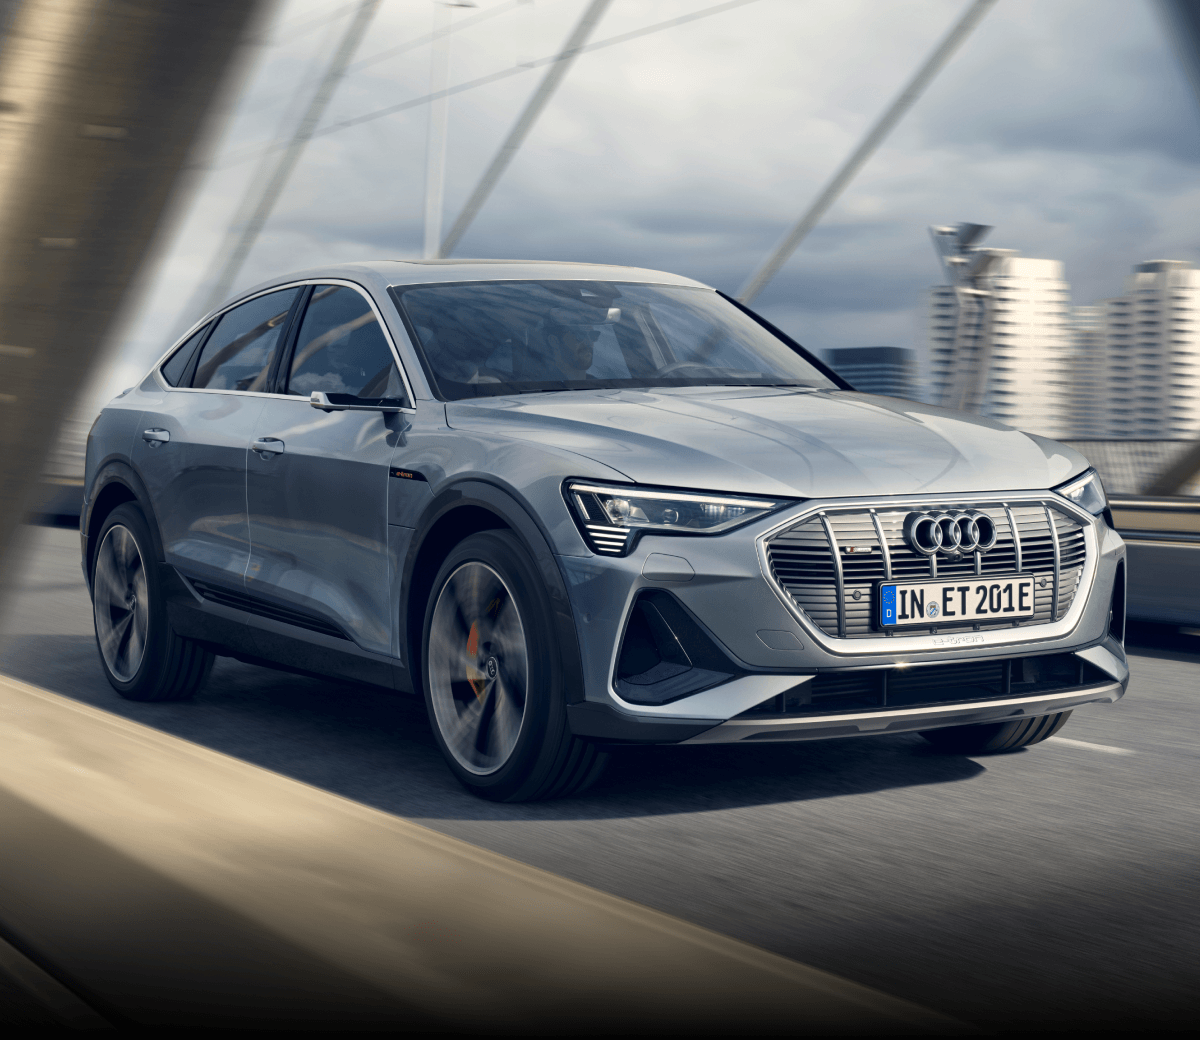 The Future Is Now. Experience a new generation of Audi.